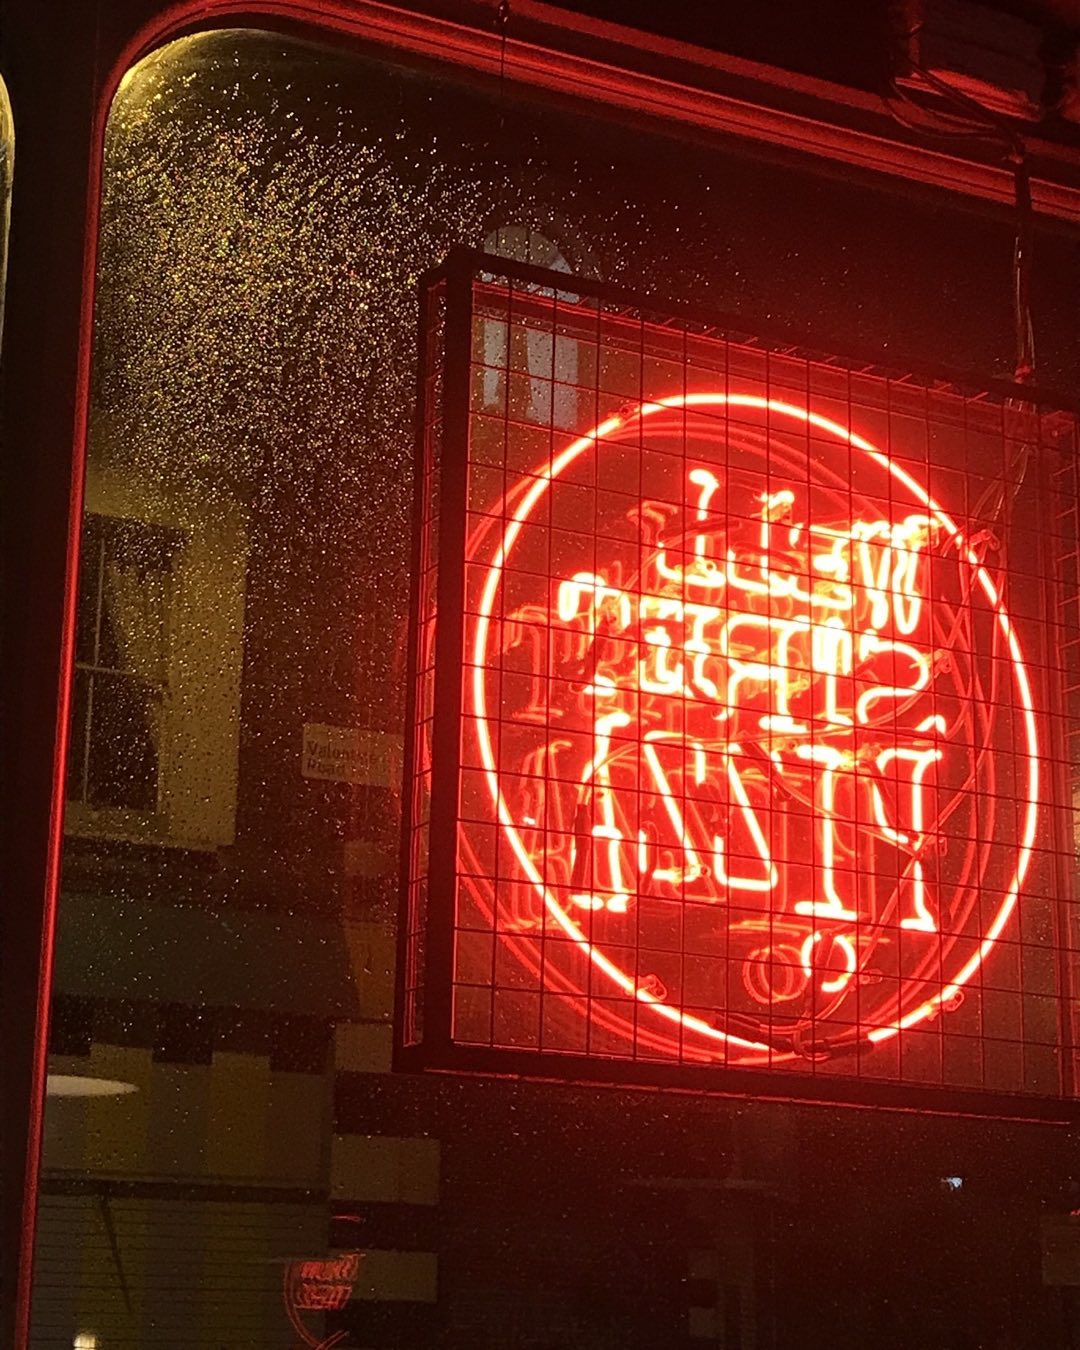 Cozy rainy day at Well Street Pizza. There is nothing better than a delicious glass of our Piceno red and a hot, hot Pizza to warm you up and relax.  Available on Deliveroo   We'll be here till 10pm   #Hugs #hackney #FireOven #FireOvenPiza #HackenyRestaurants #WellStreetPizza #RainyLondon #WarmDigs #RedWine #Neopolitana